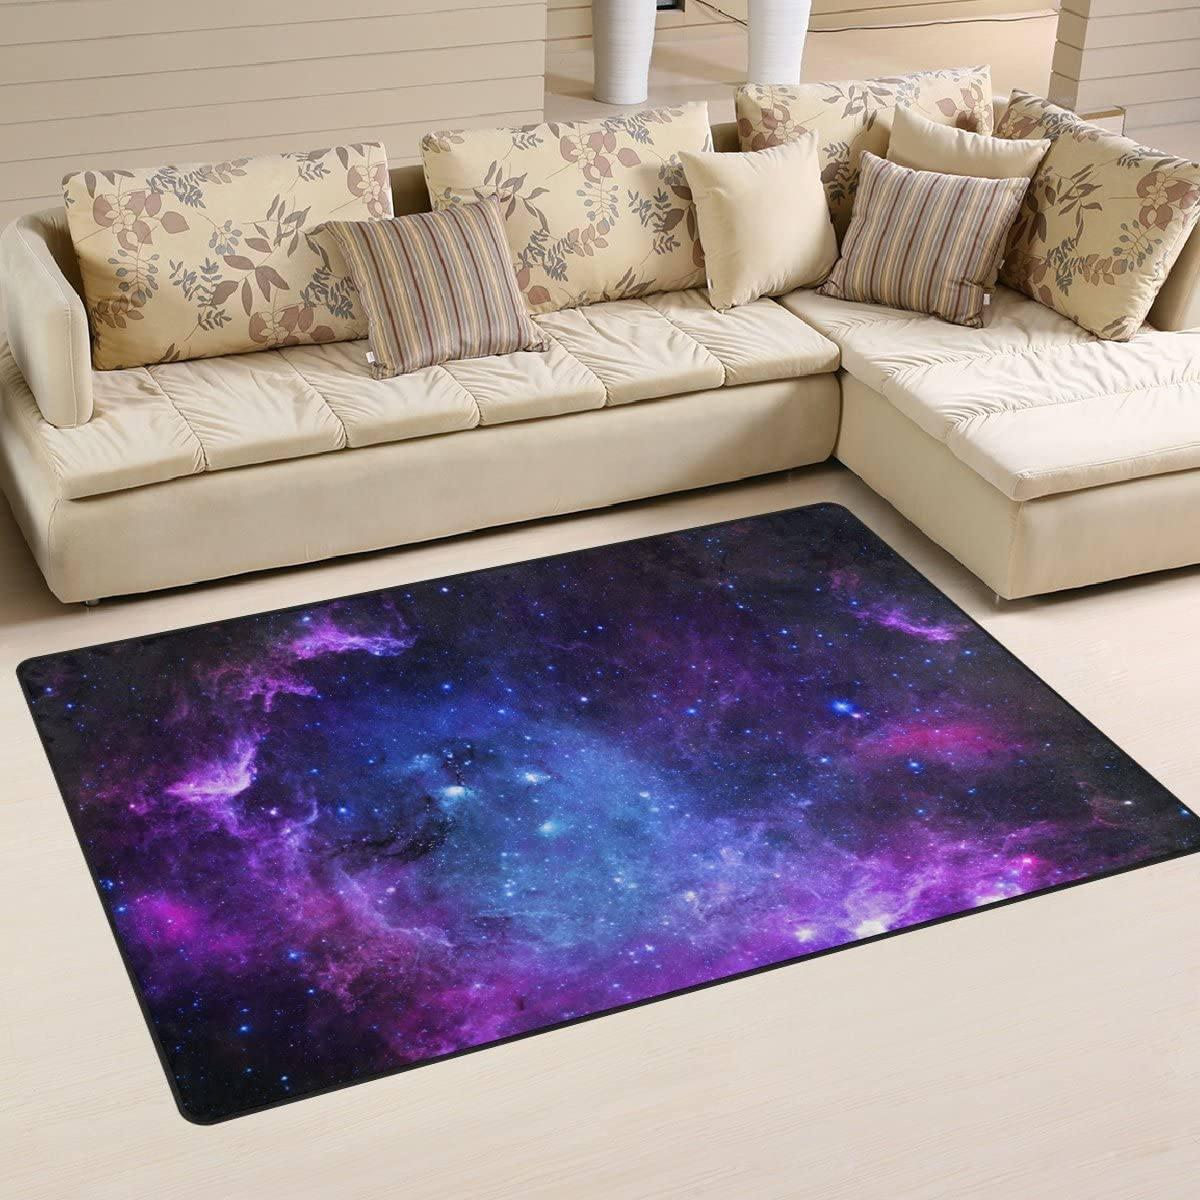 Yochoice Non-slip Area Rugs Home Decor, Vintage Beautiful Spiral Purple Galaxy Space Floor Mat Living Room Bedroom Carpets Doormats 60 x 39 inches